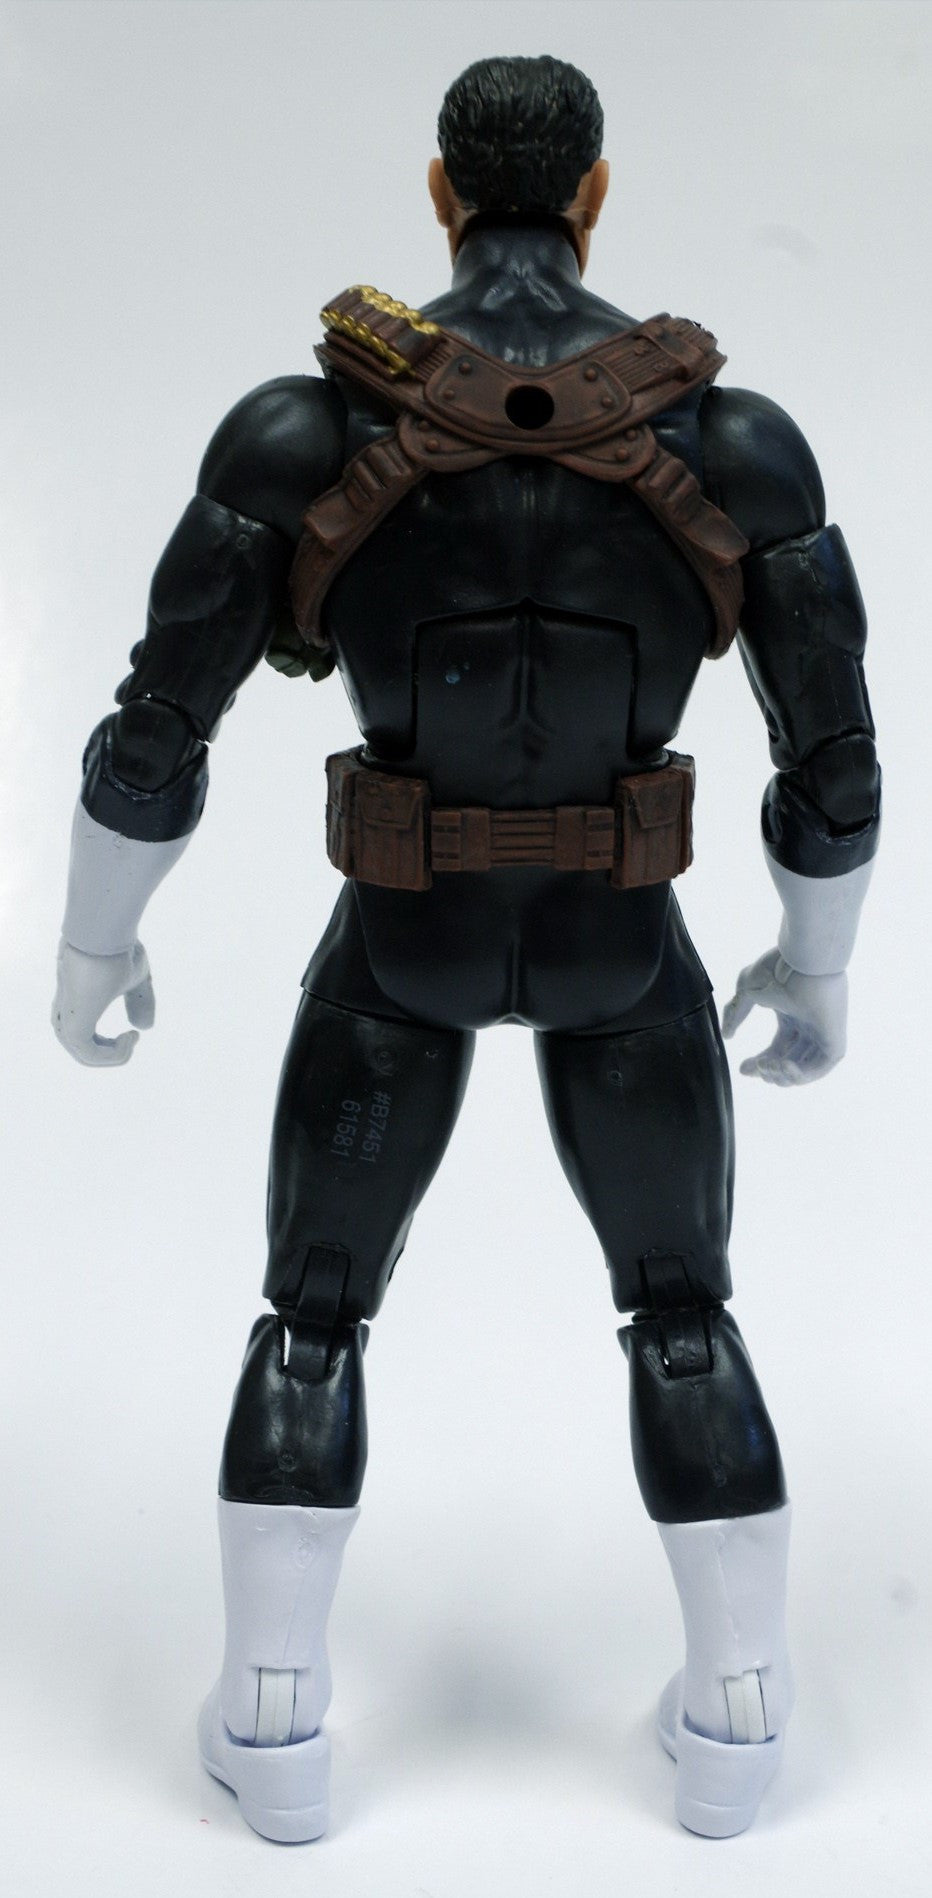 Marvel Legends Infinite - Exclusive Jim Lee Version of Punisher (RT09)